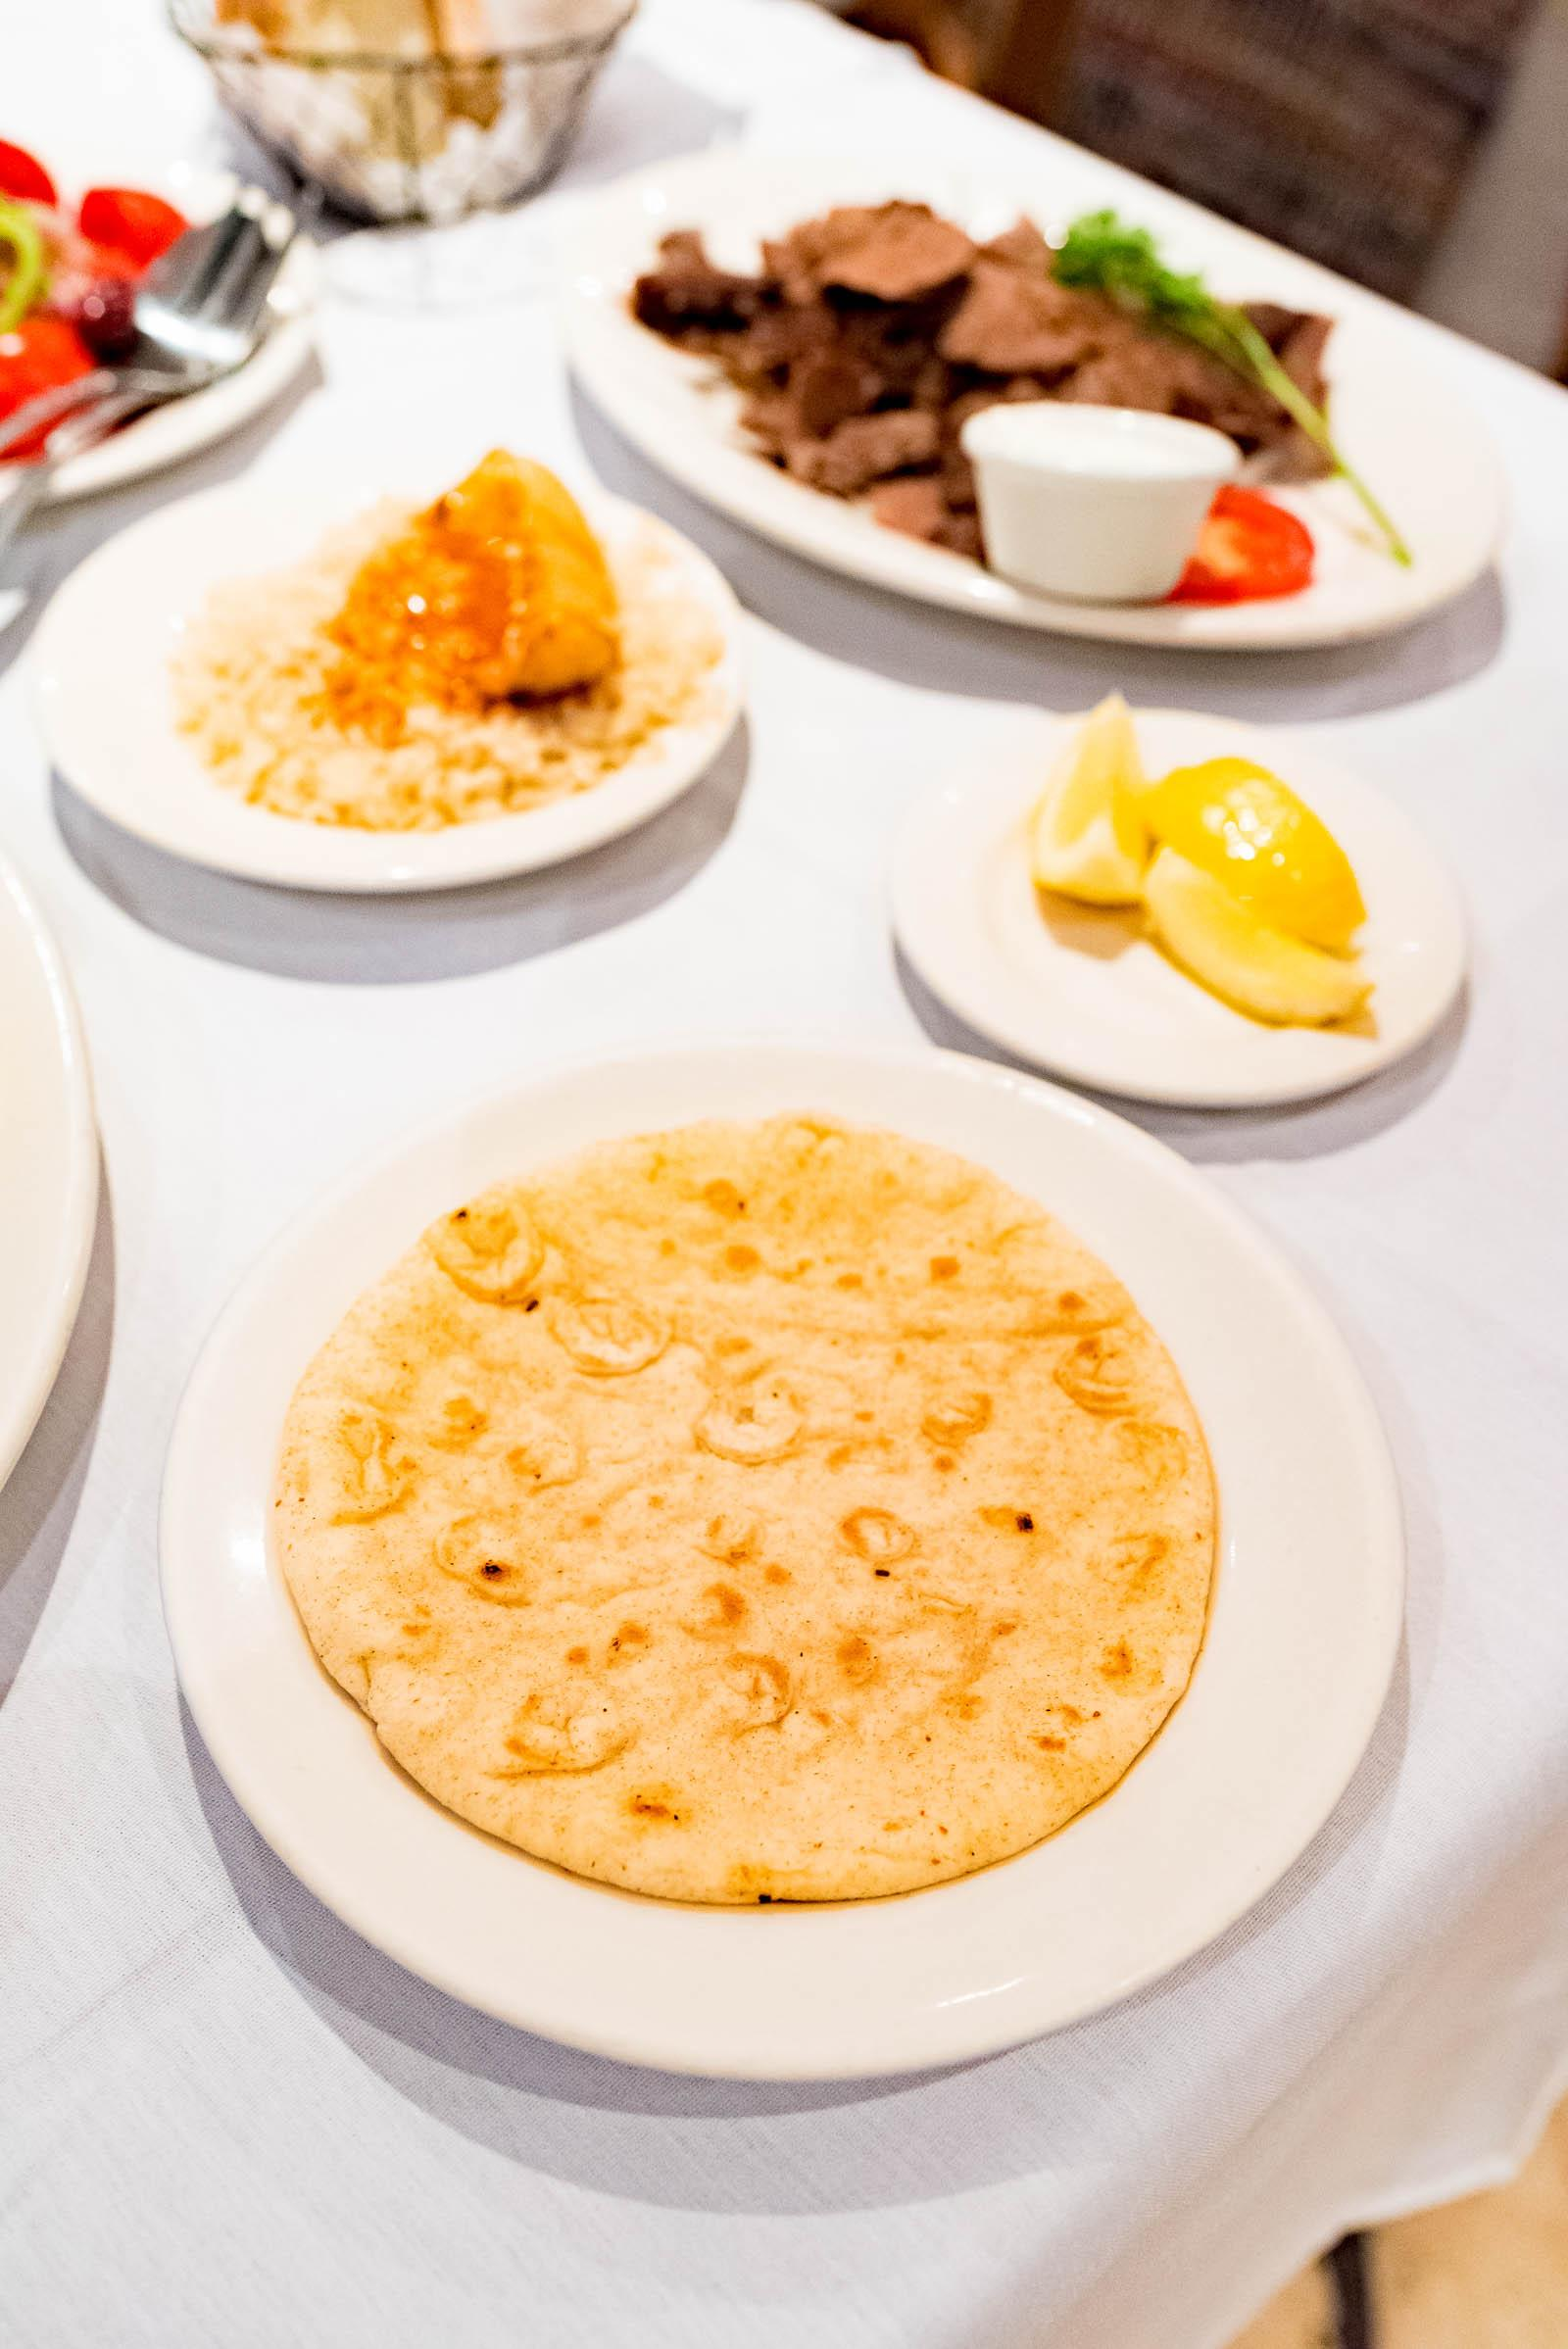 Greek Islands Chicago Restaurant